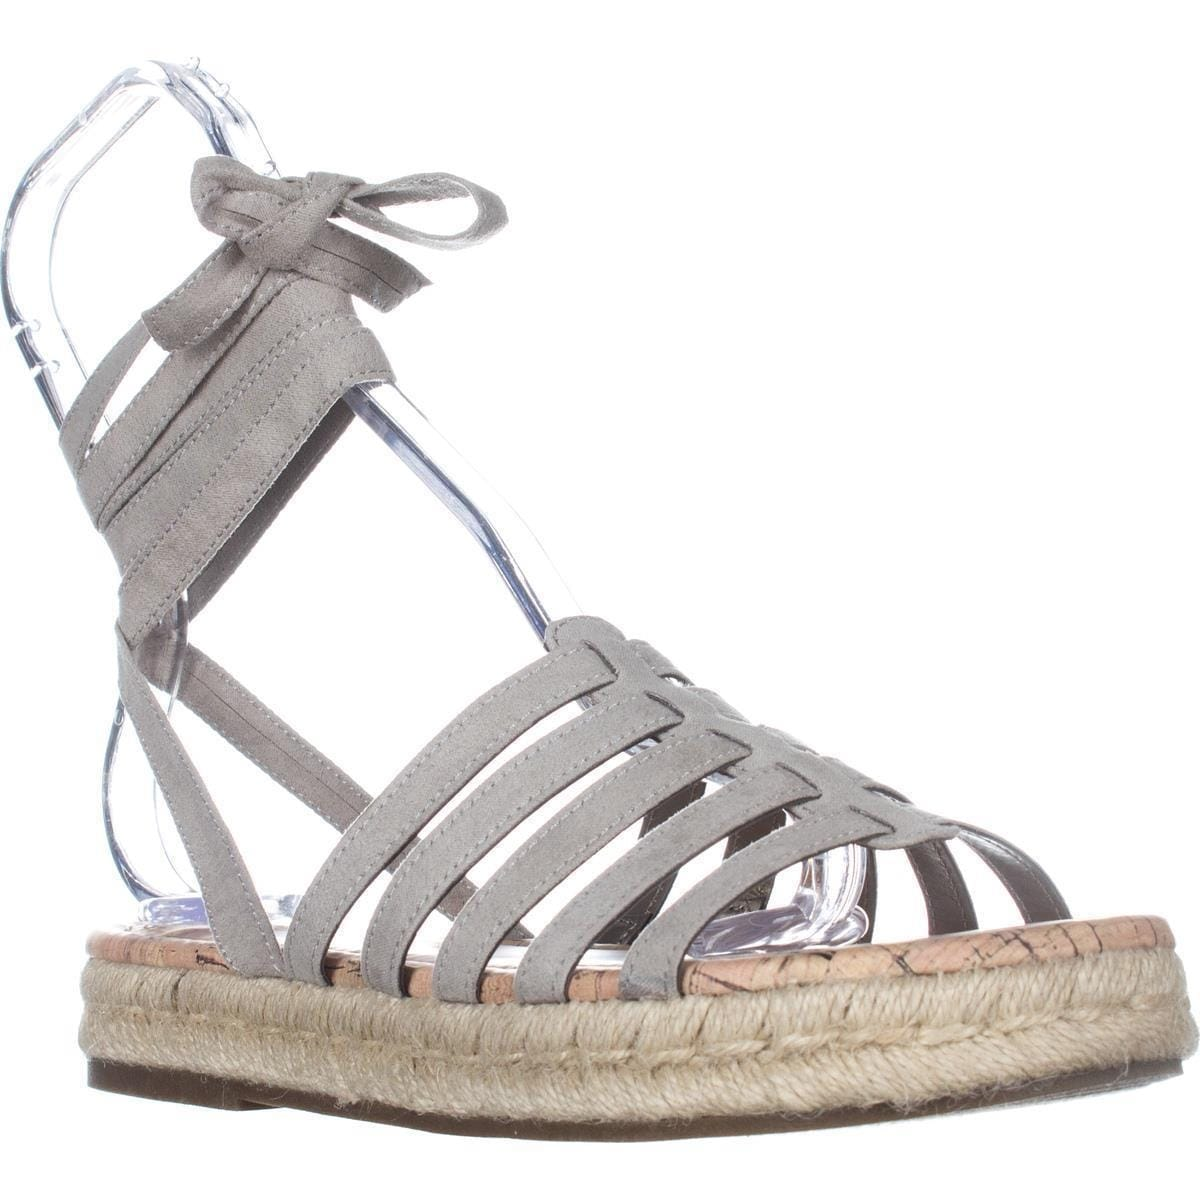 7534e2462f12 Shop Circus Sam Edelman Ariel Tie Up Sandals, Greige - On Sale - Free  Shipping On Orders Over $45 - Overstock - 17979603